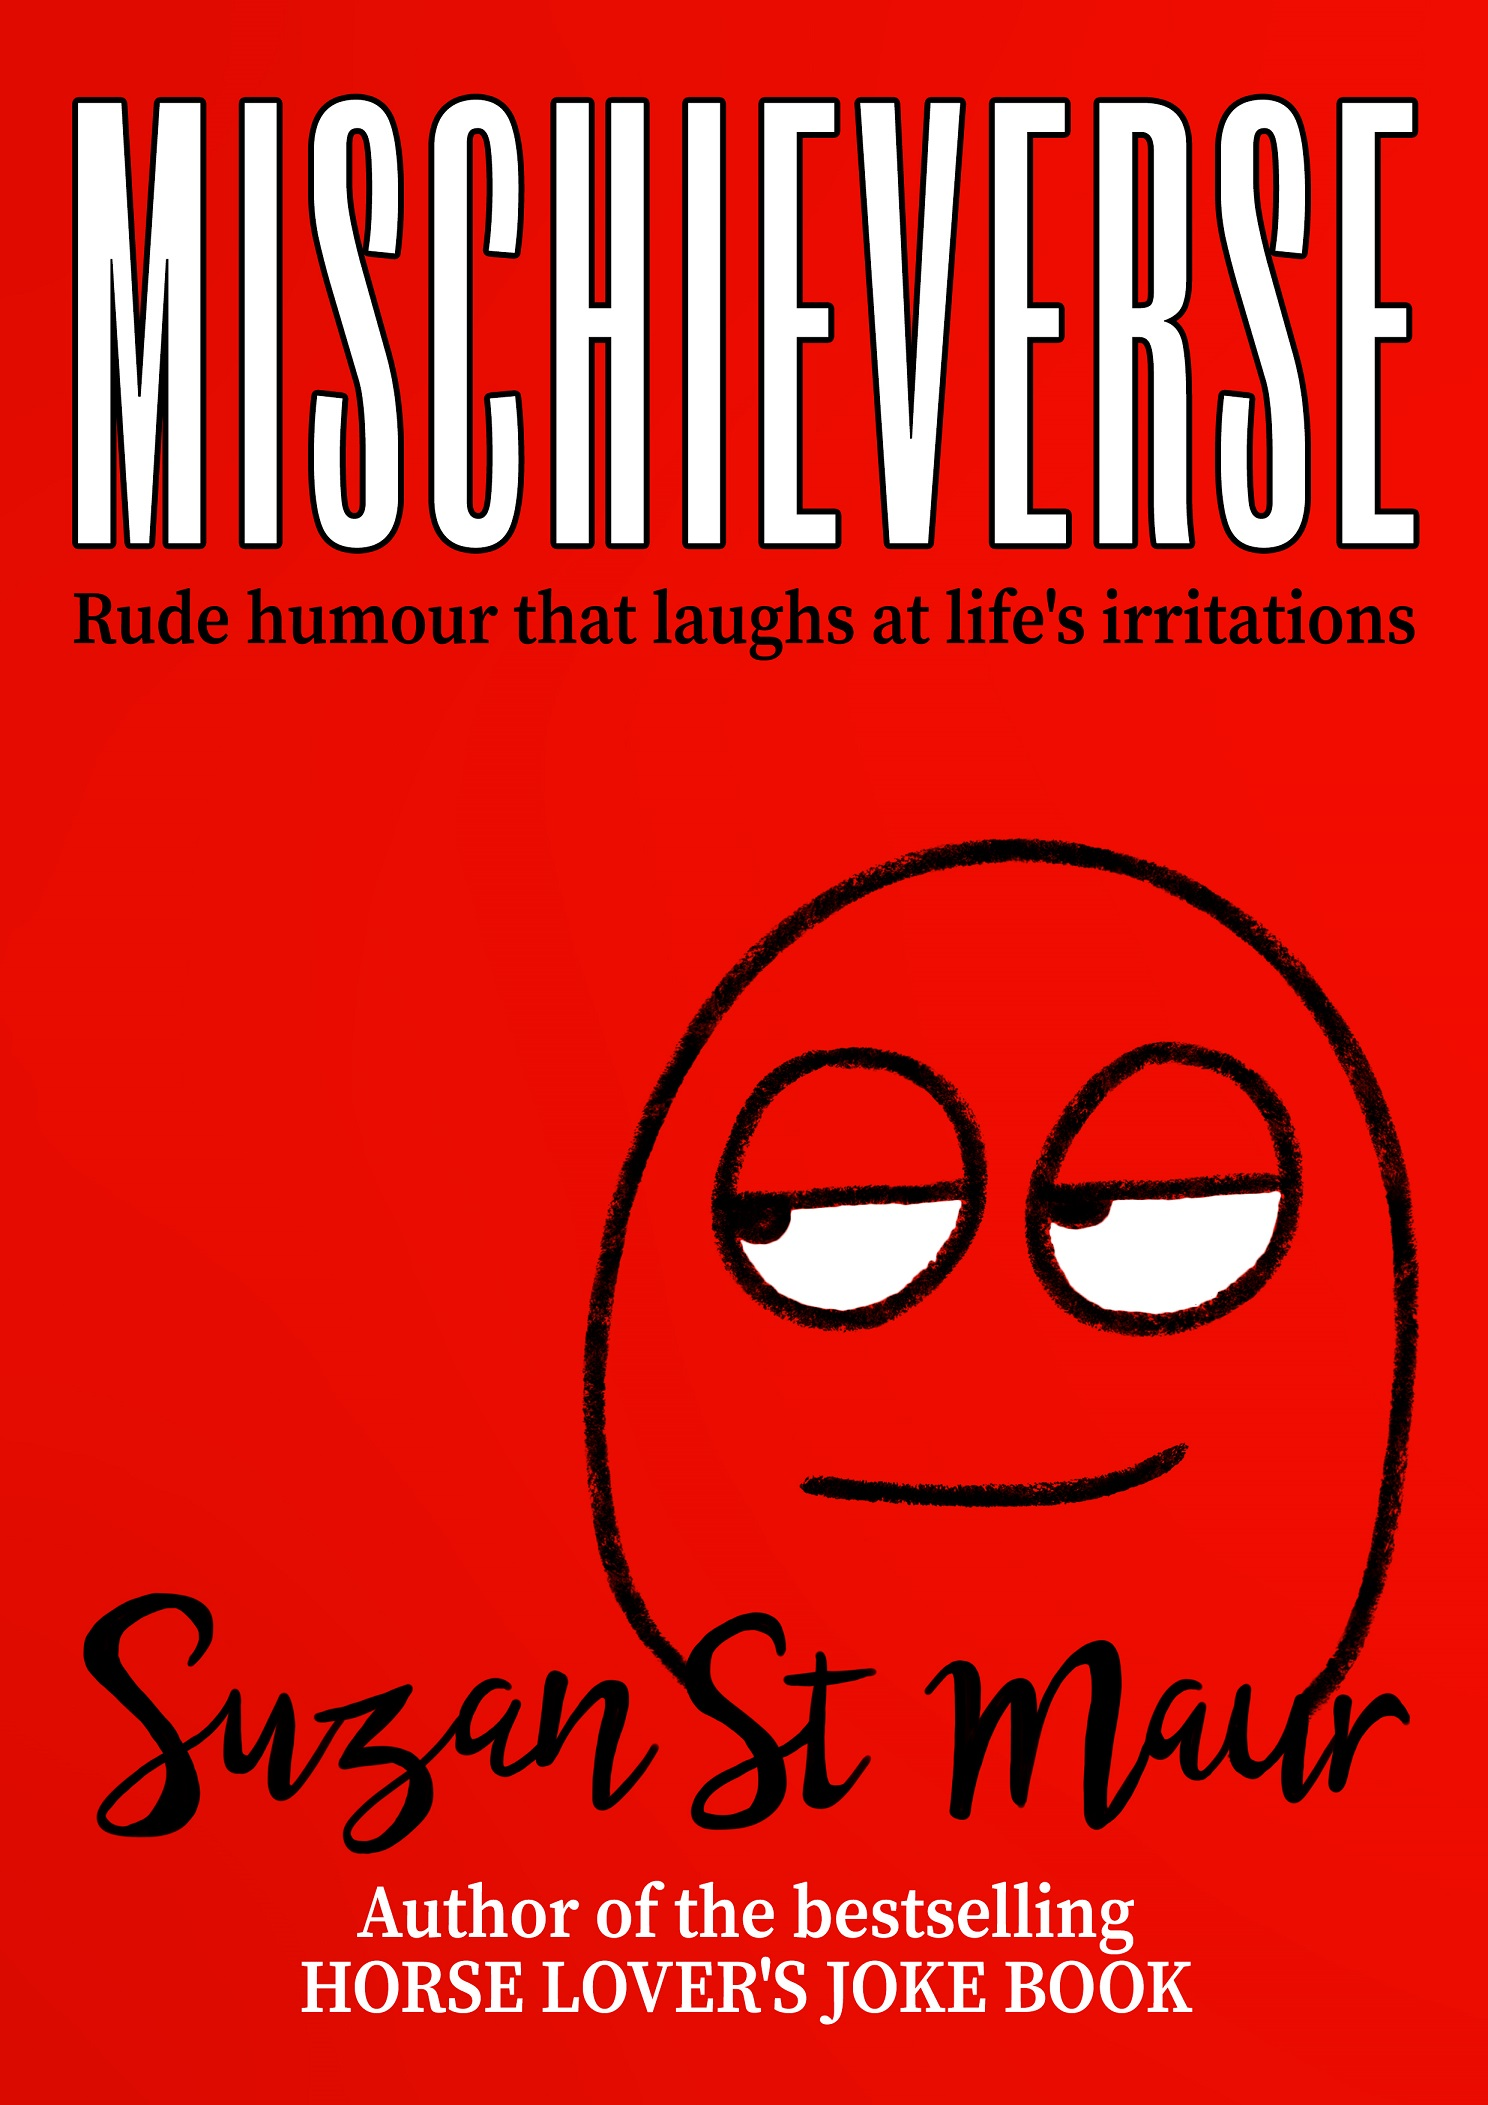 Mischieverse is Suzan St Maur's first book of naughty, humorous poetry ... from Corona Books UK.